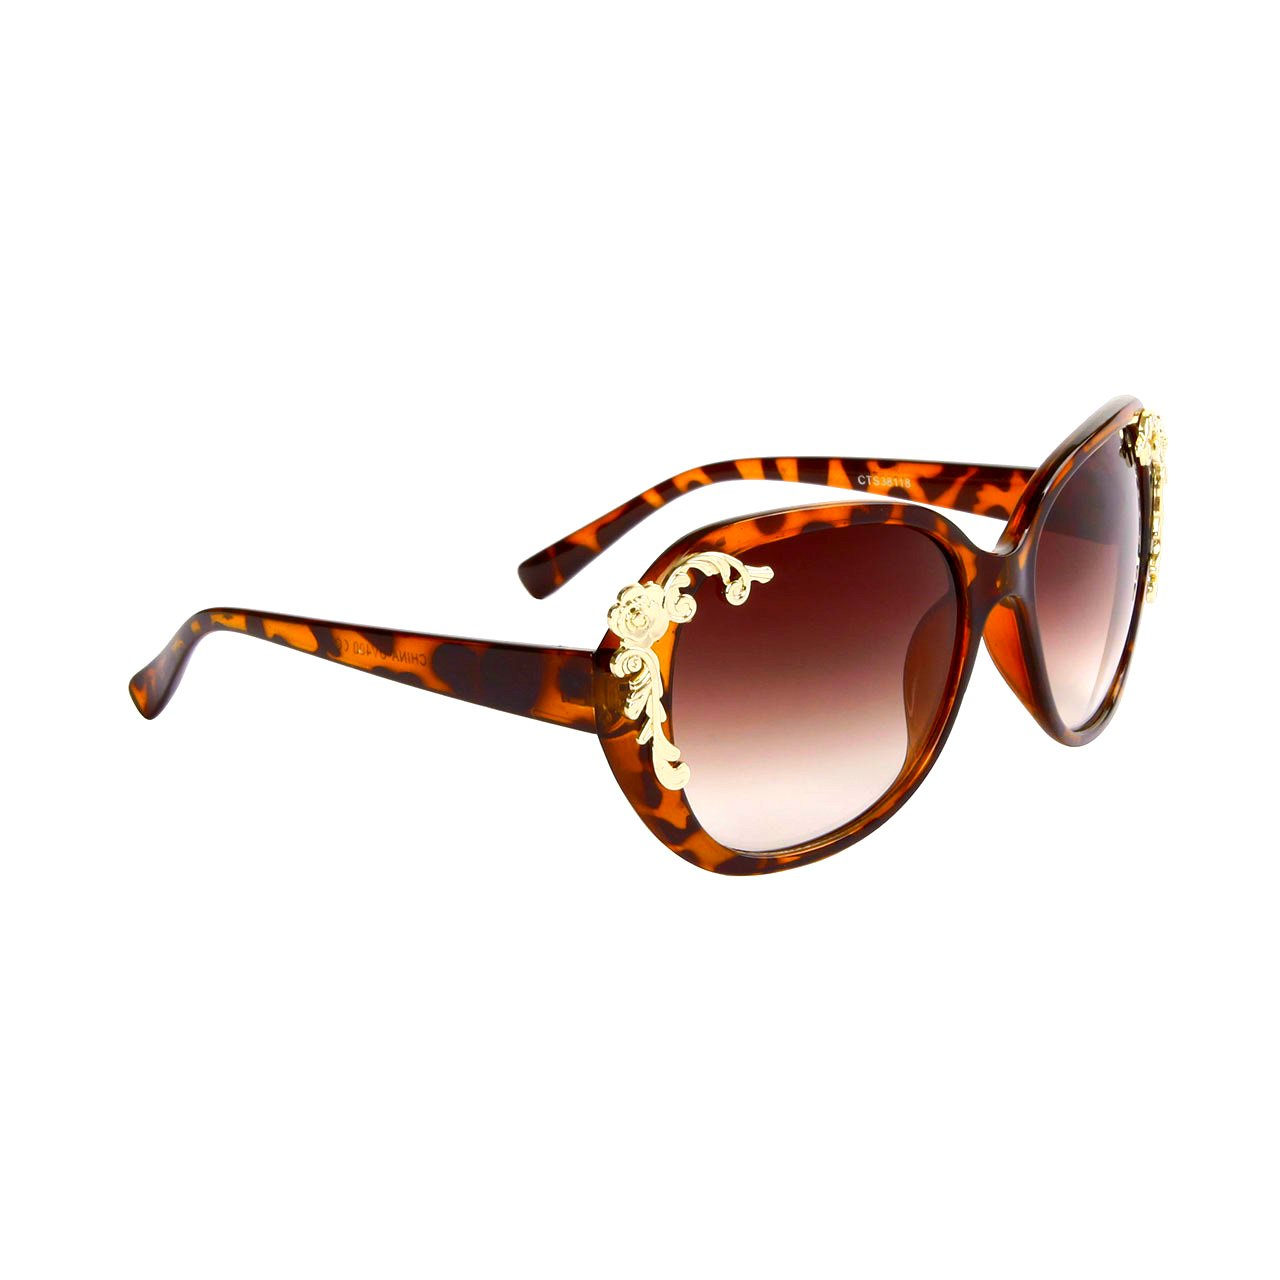 DESIGNER INSPIRED WOMEN'S SUNGLASSES TORTOISE FRAME CELEBRITY SPOTTED EYE WEAR WITH GOLD FLOWERS